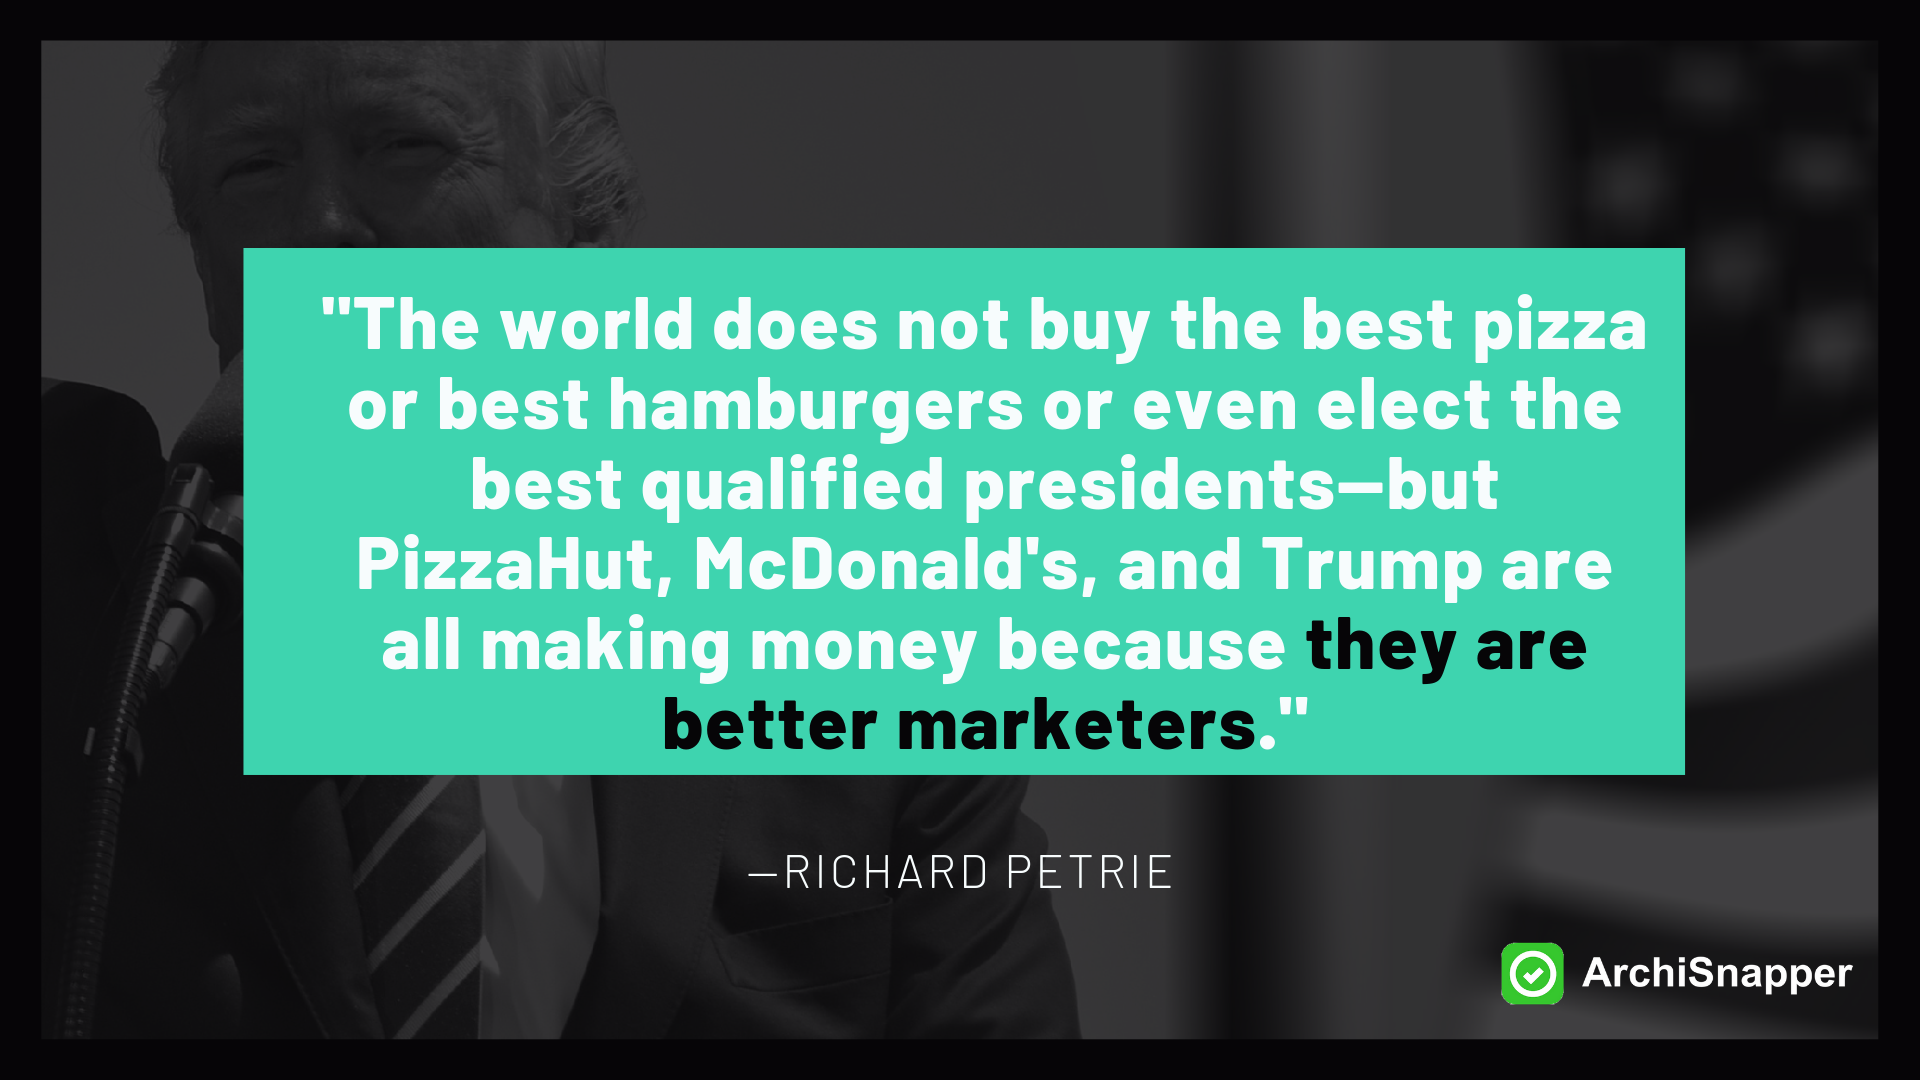 Richard Petrie on Marketing for architects   Archisnapper